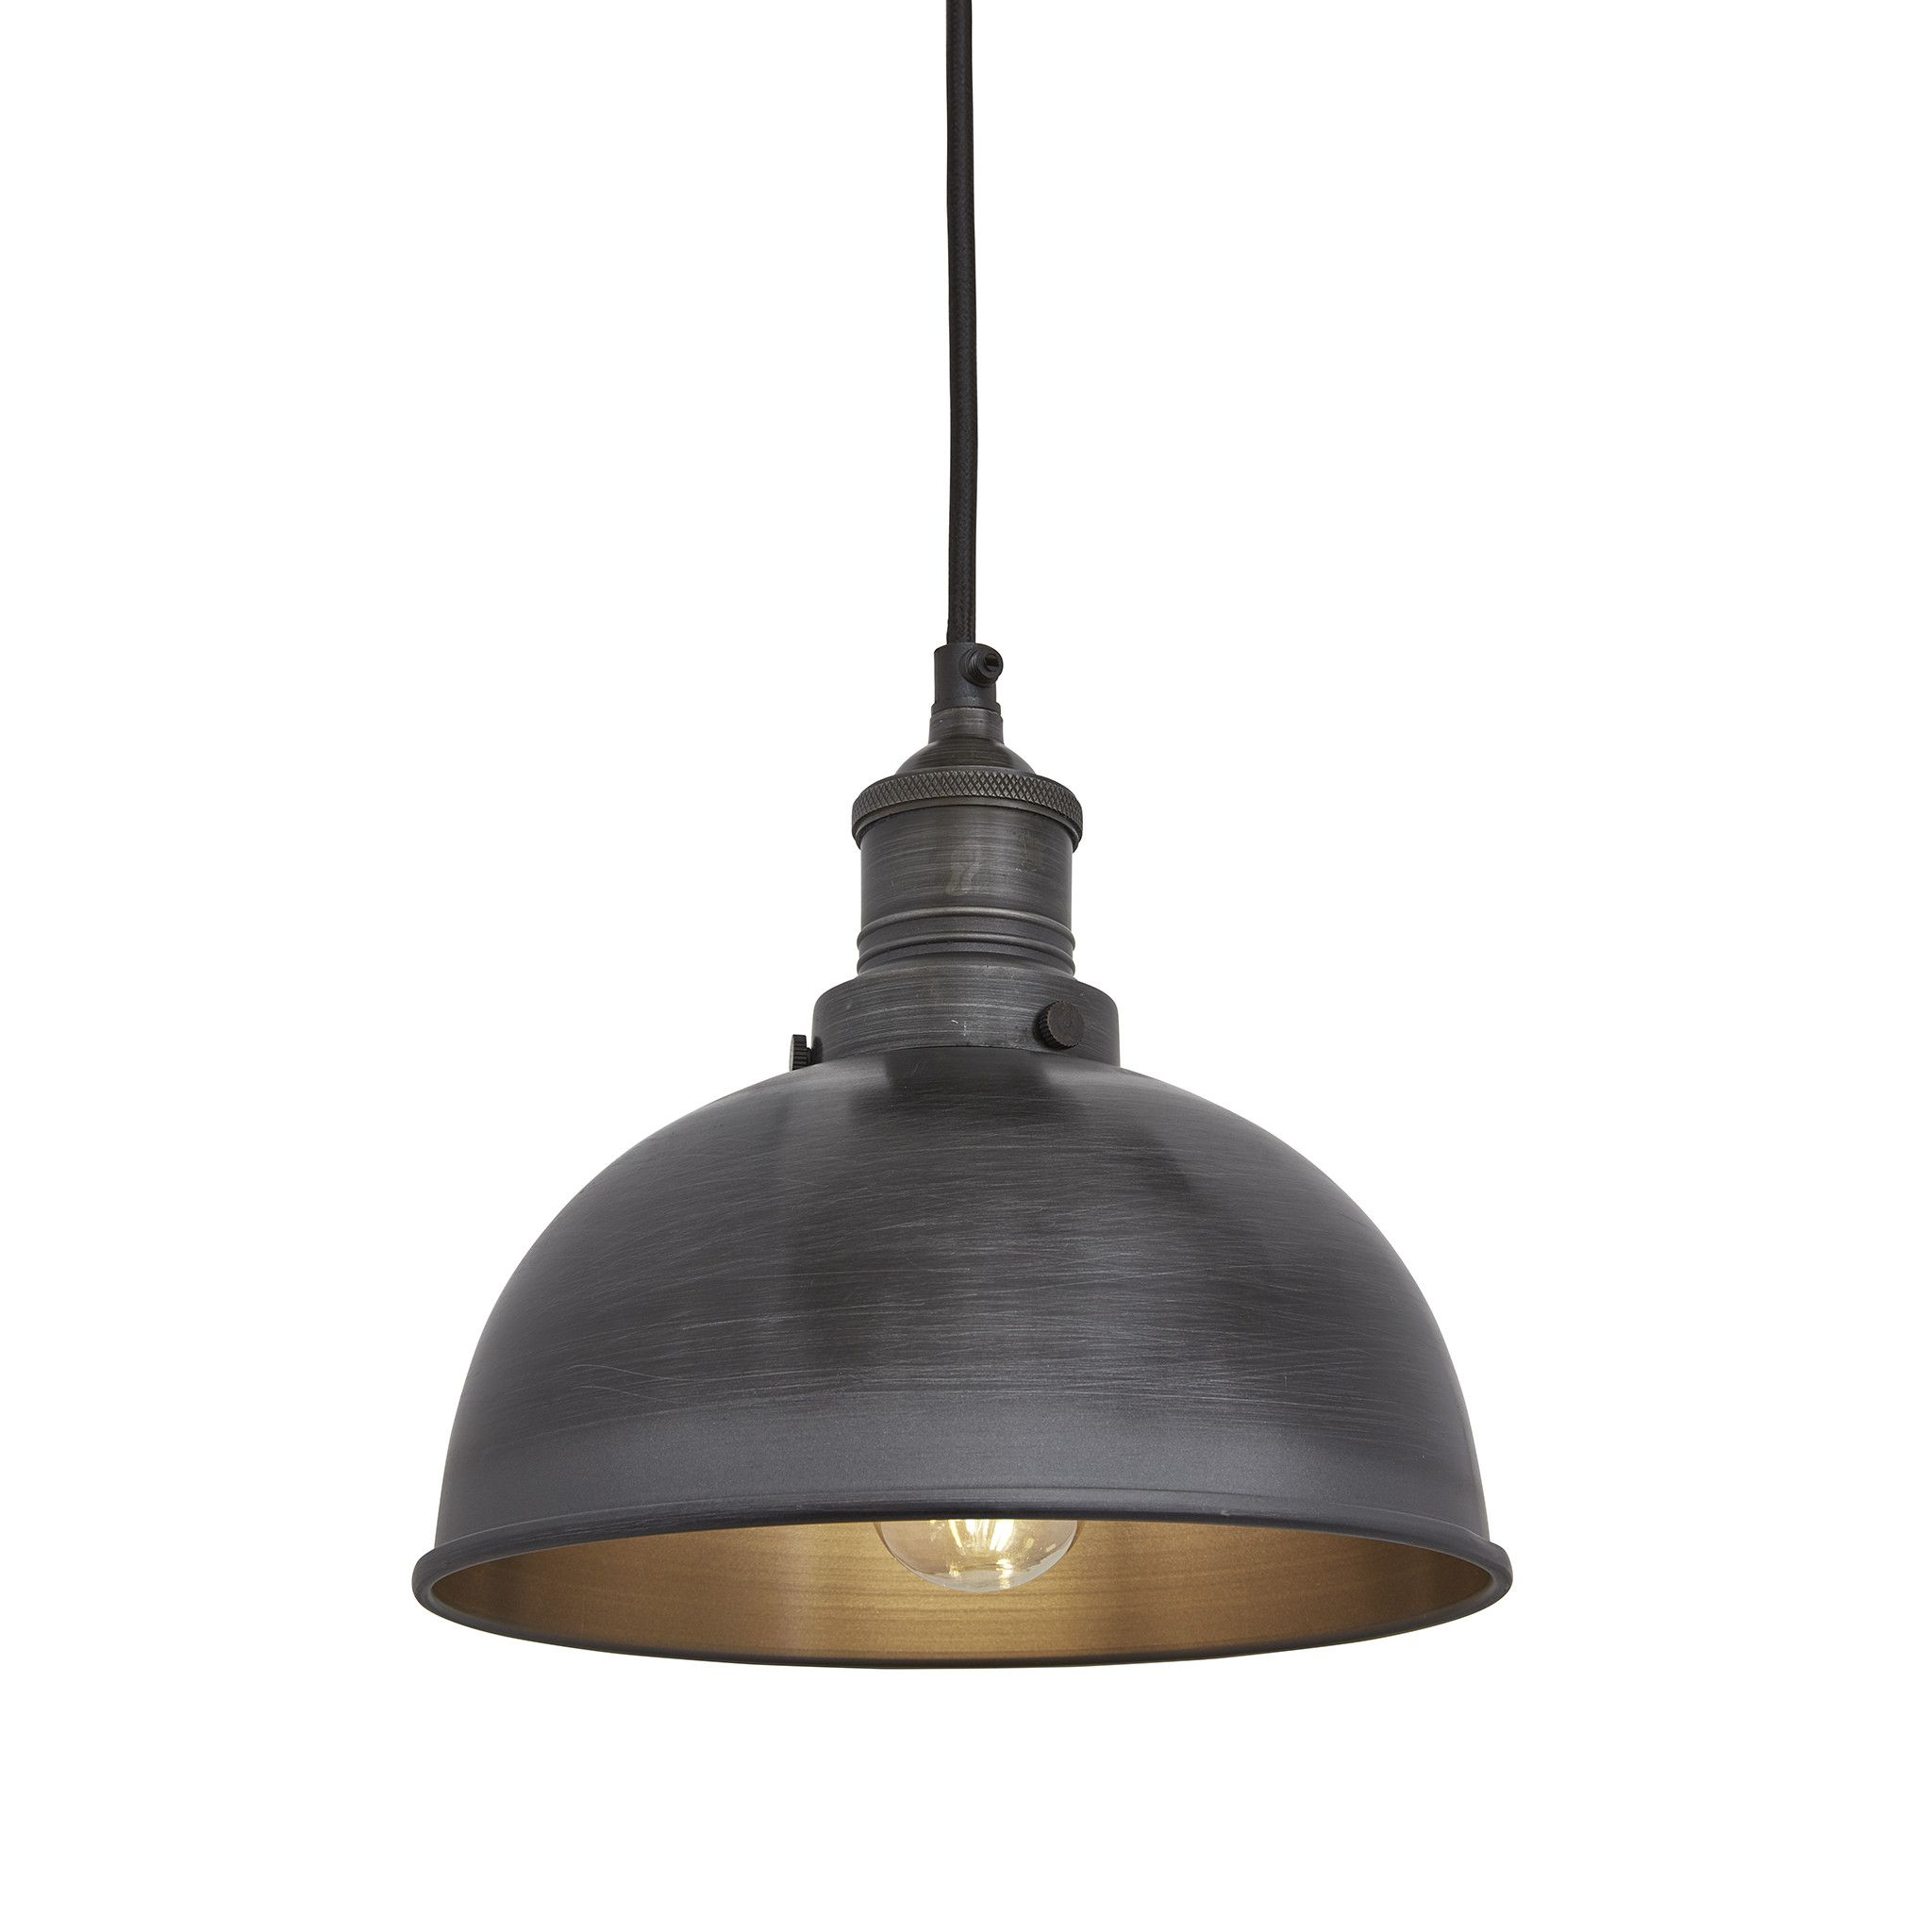 dome lighting fixtures. Brooklyn Dome Pendant - 8 Inch Pewter Lighting Fixtures